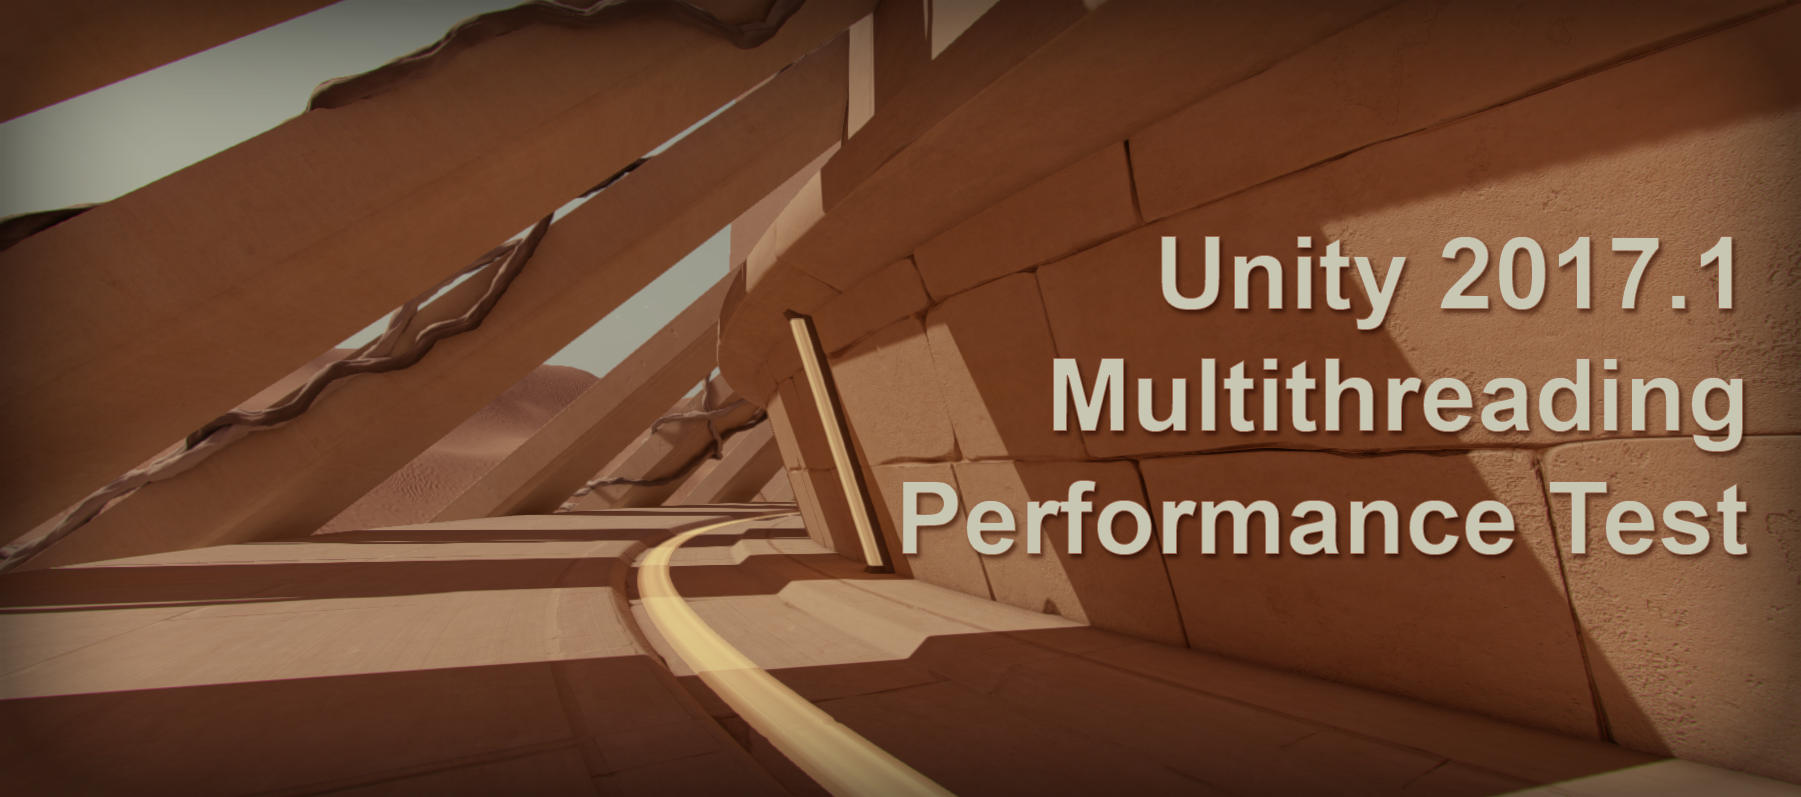 Unity Multithreaded Header Image